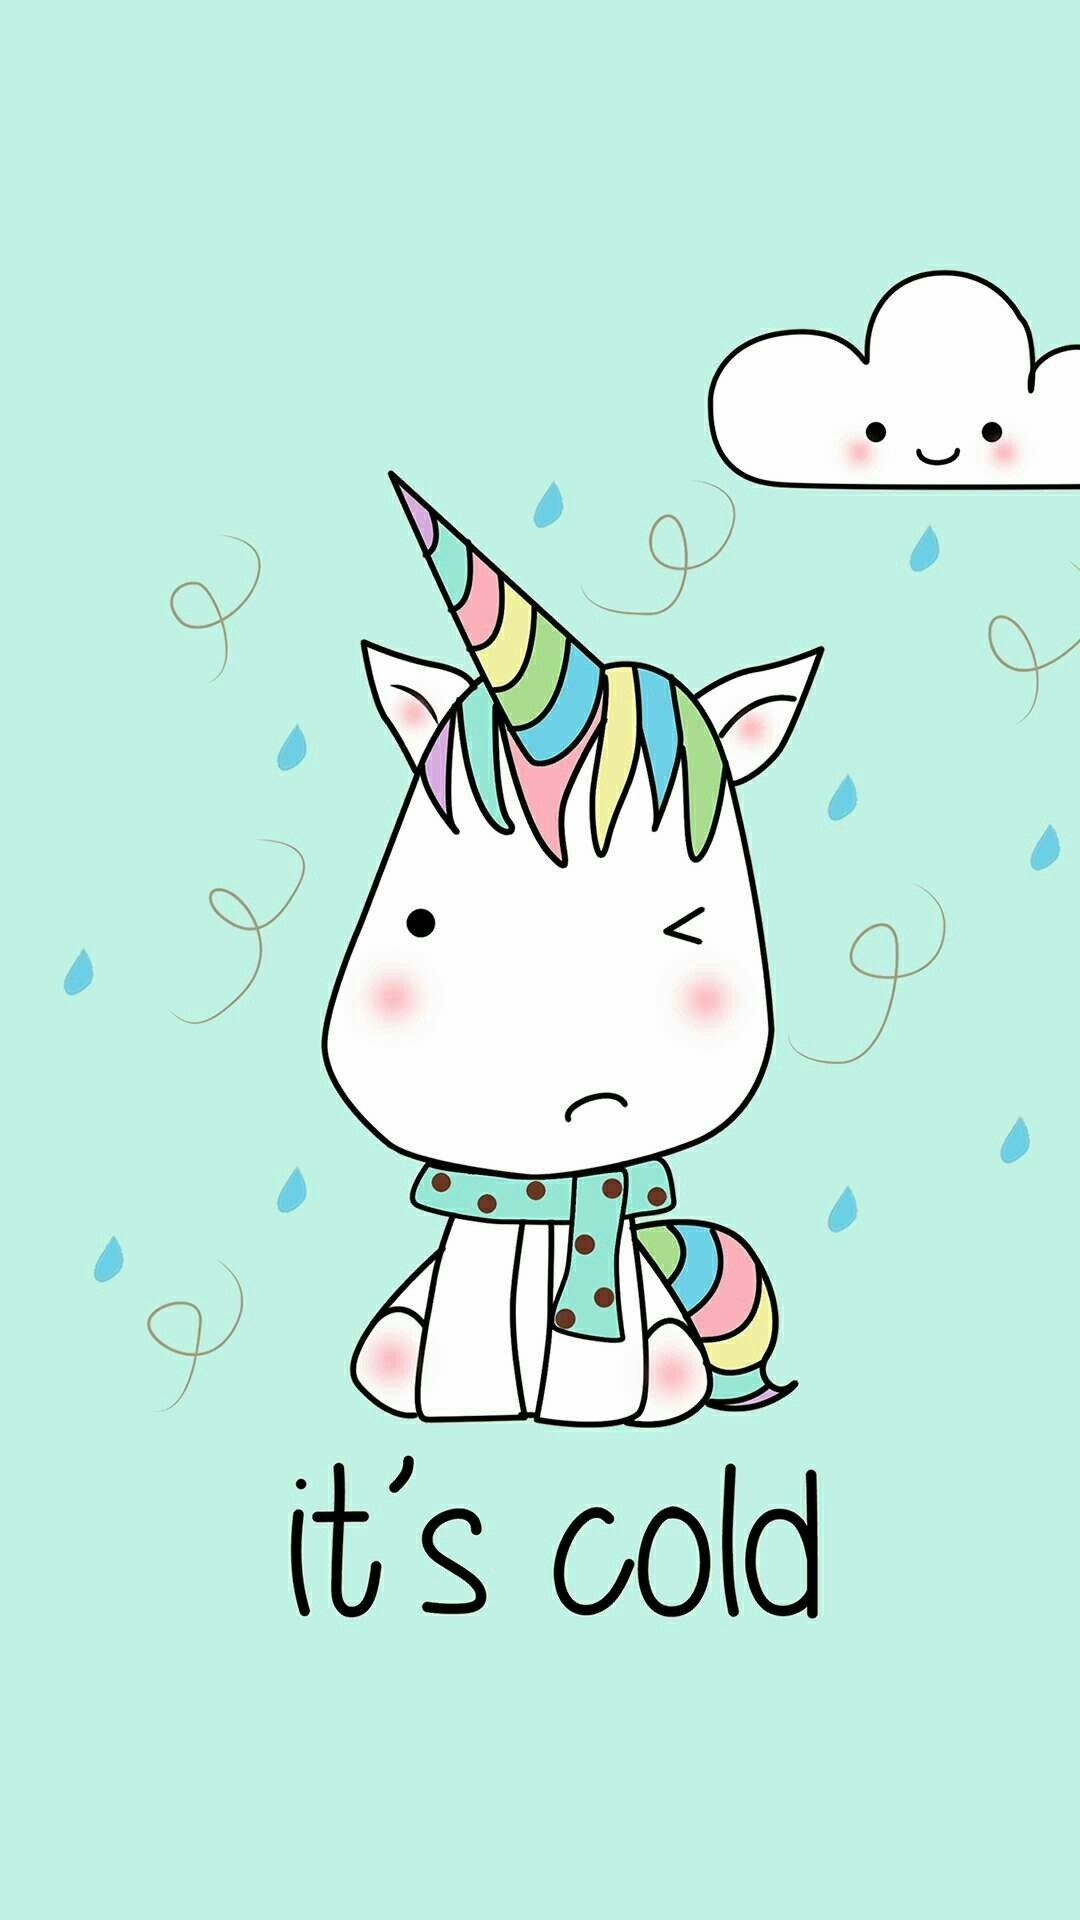 Cute Kawaii Background Hupages Download Iphone Wallpapers Unicorn Wallpaper Cute Unicorn Wallpaper Iphone Wallpaper Unicorn